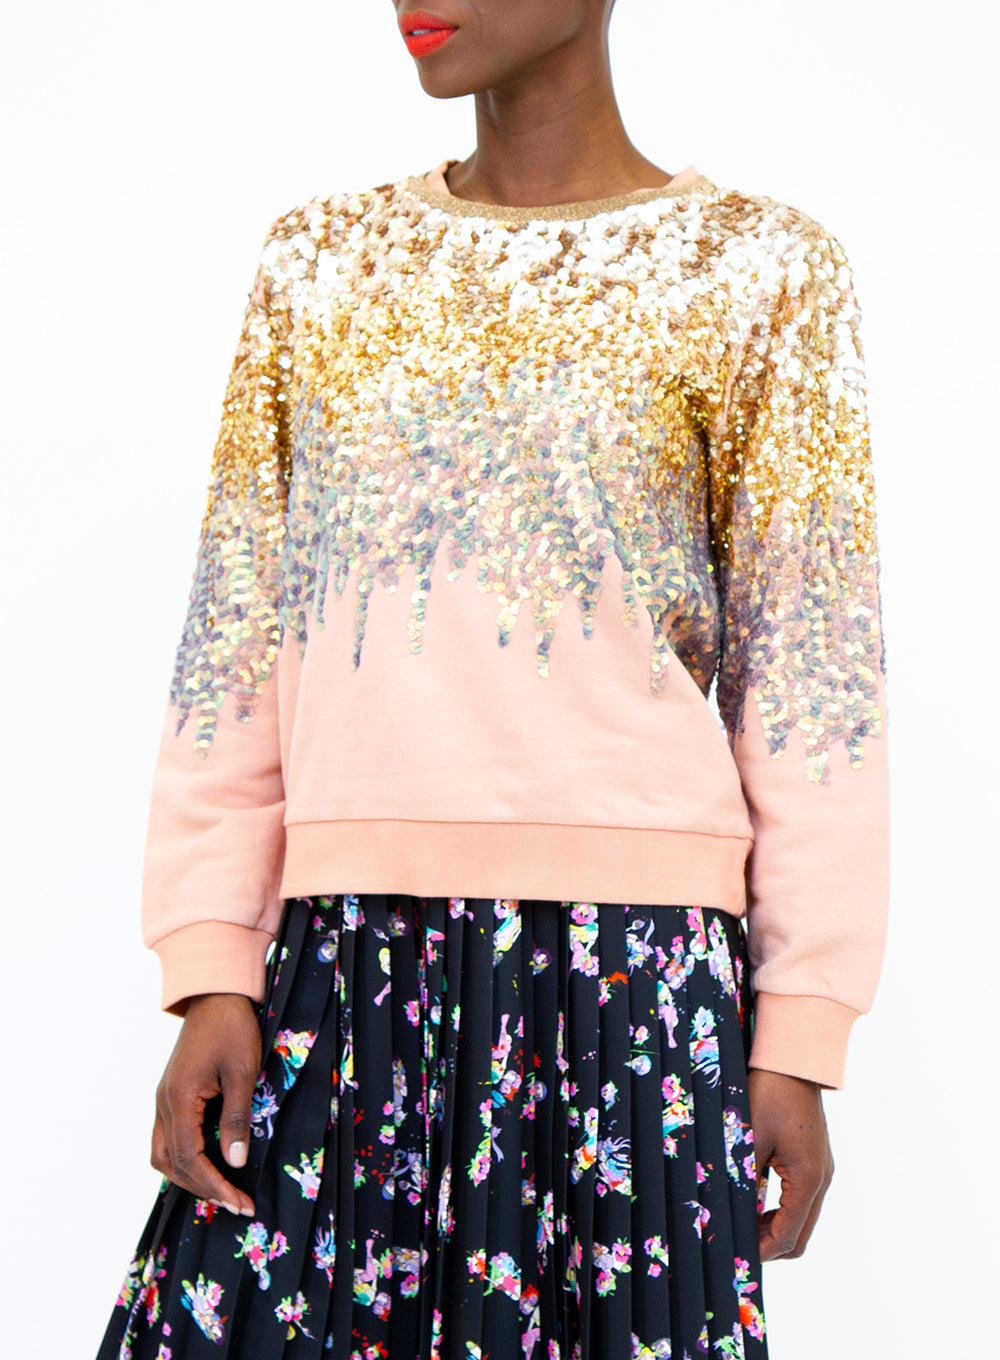 UGLY GIRL | 'Sandalwood' Ombre Sequin Sweatshirt